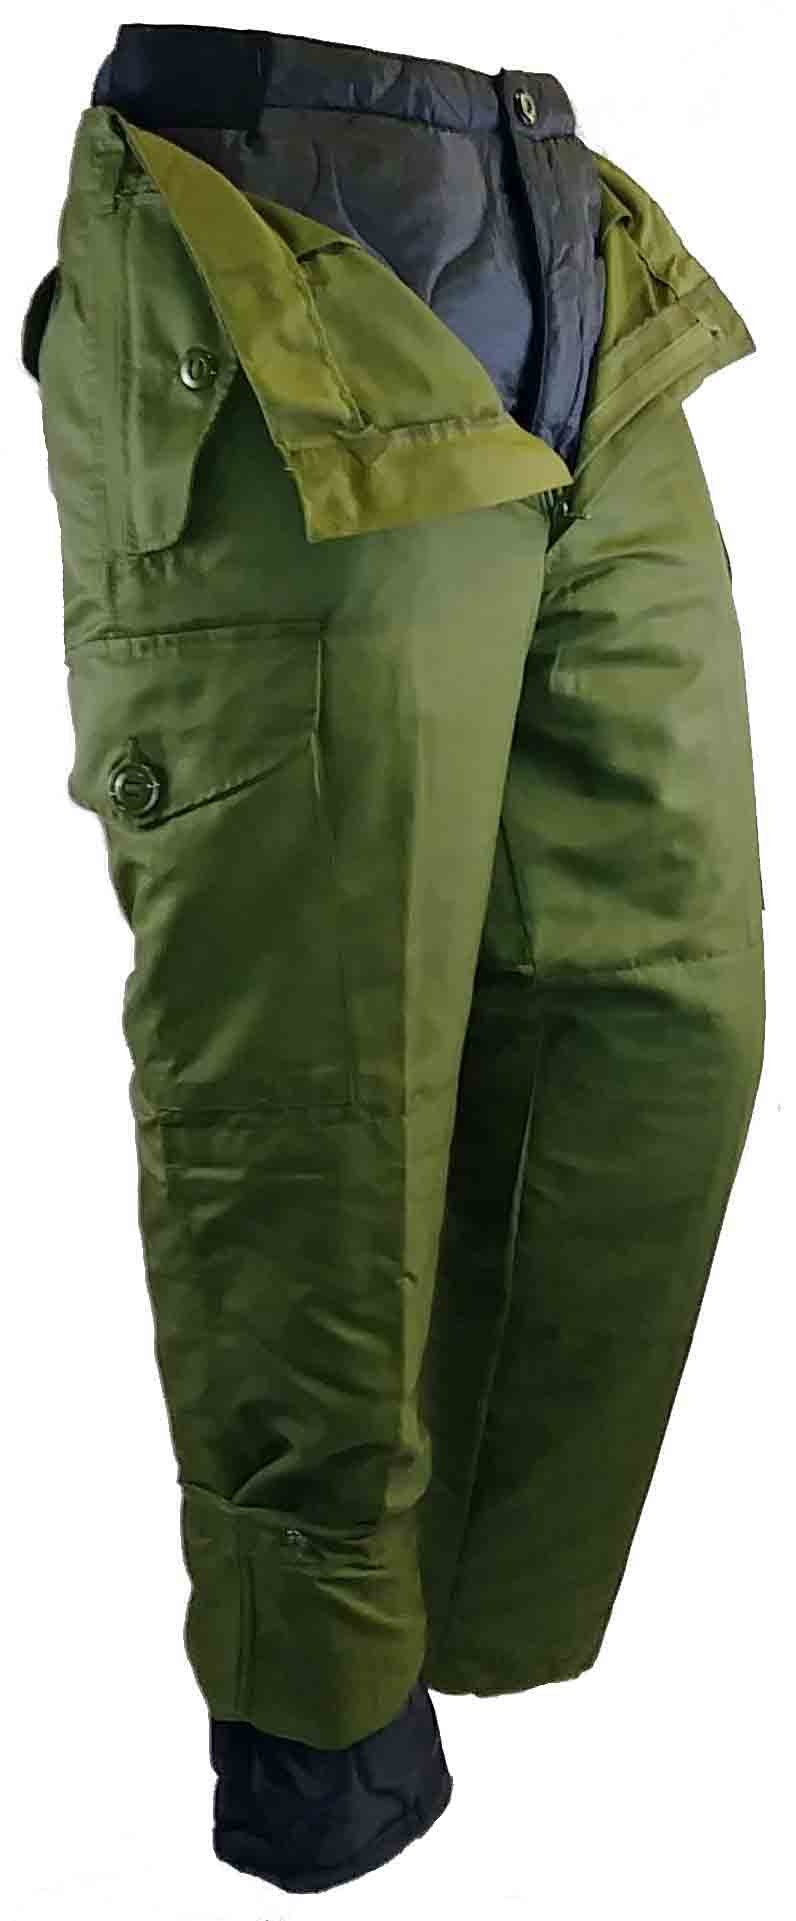 Wind proof combat style pant with liner.